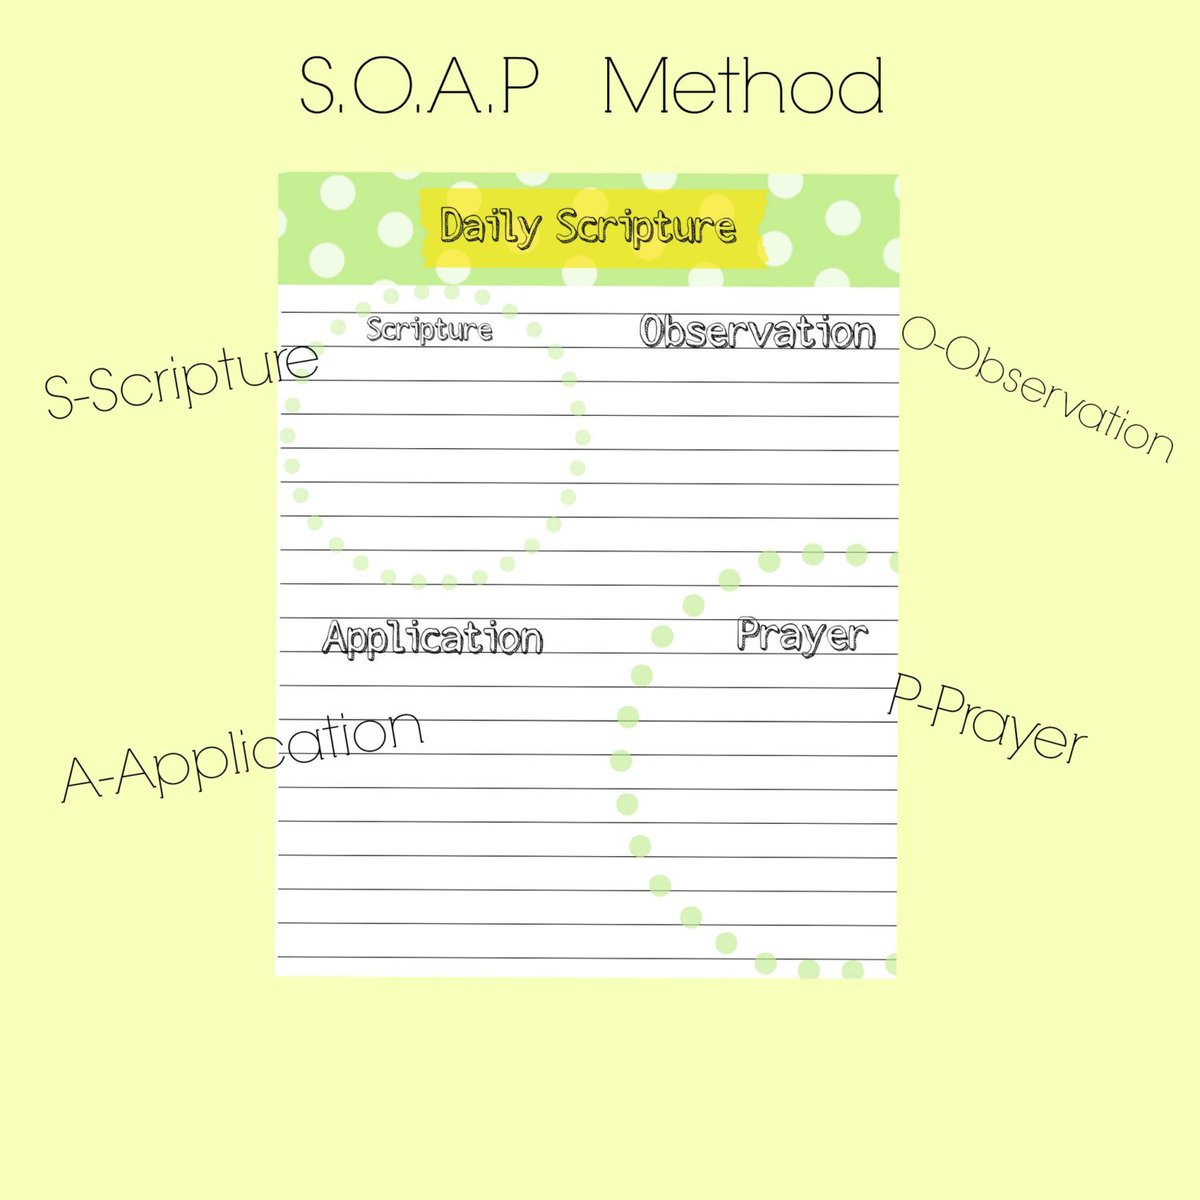 image about Soap Bible Study Printable named soapmethod hashtag upon Twitter